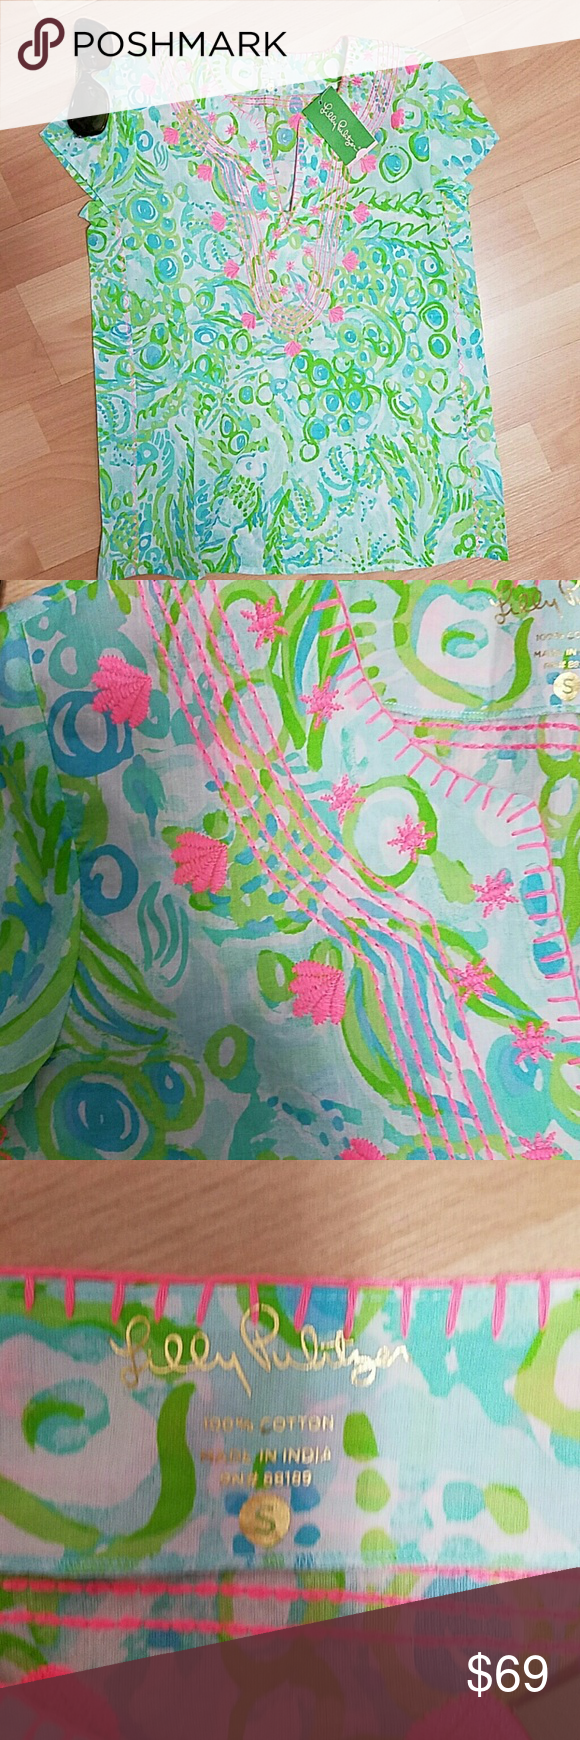 NEW Lilly Pulitzer Sea Breeze Tunic pool blue NEW LILLY PULITZER Sea Breeze Tunic size S Any Fins Possible pool blue with pink embroidery  Resort ready, 100% cotton Lilly Pulitzer Tops Tunics